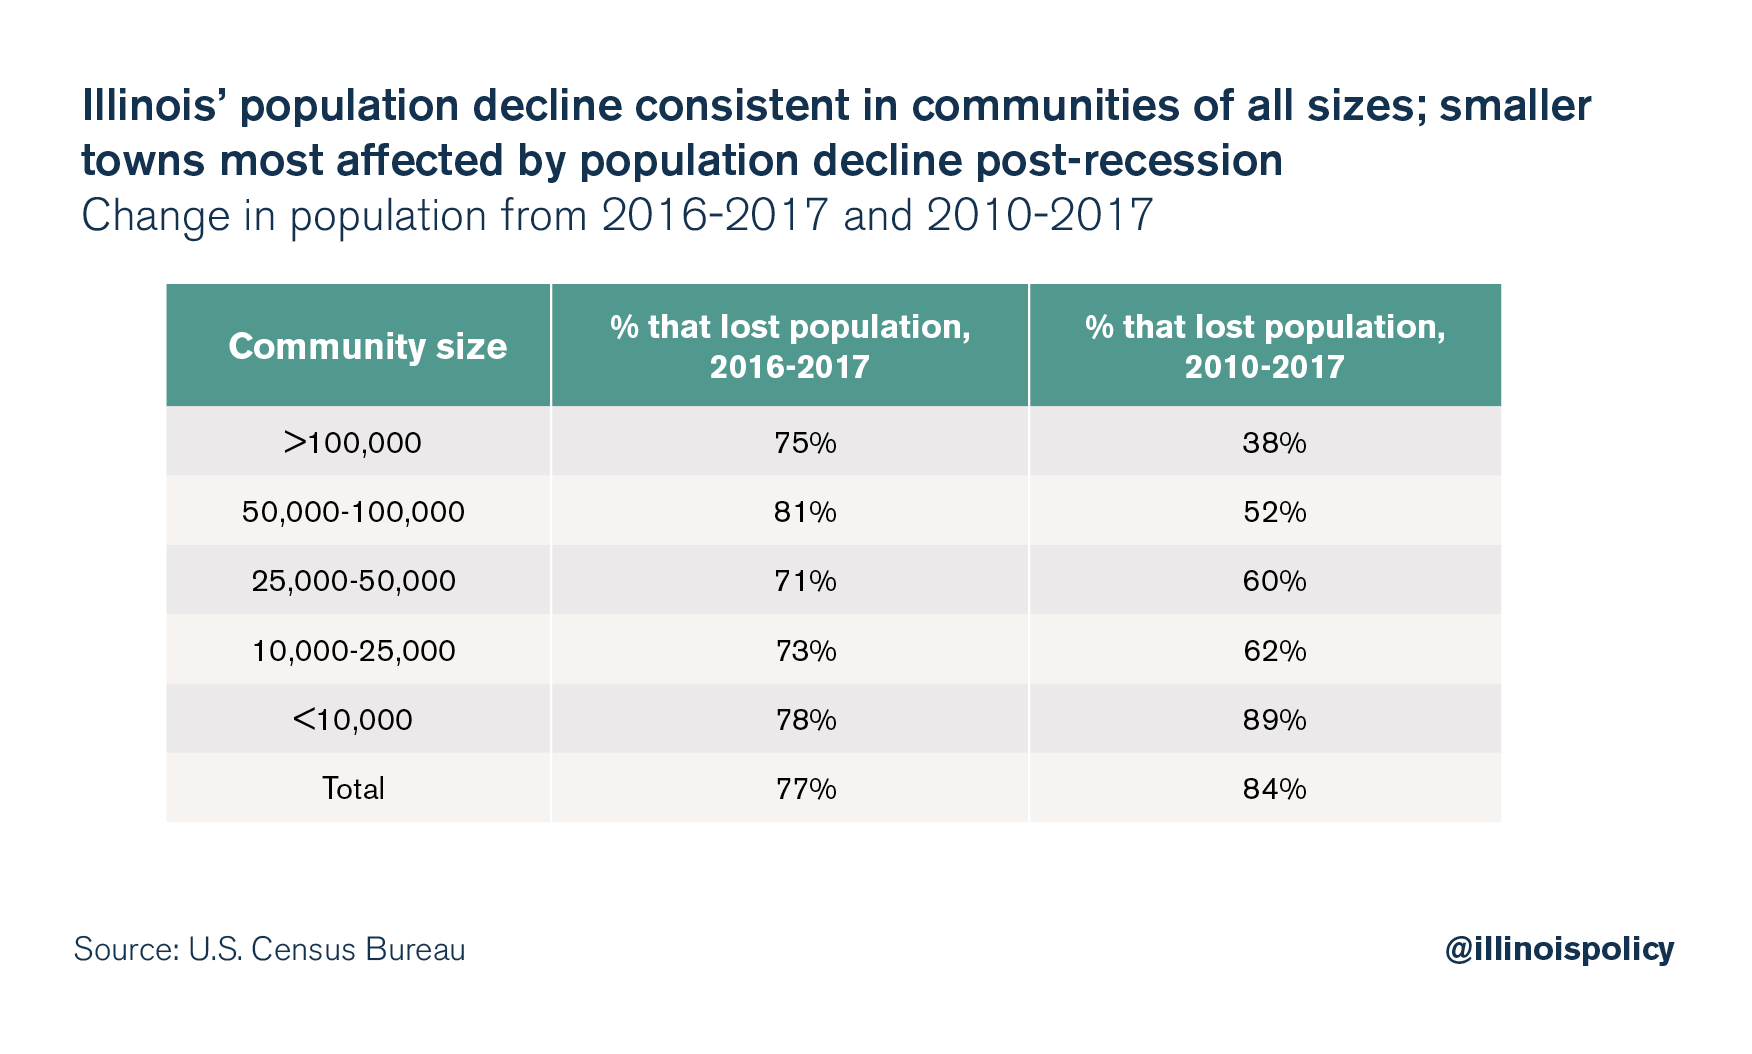 Illinois' population decline consistent in communities of all sizes; smaller towns most affected by population decline post-recession